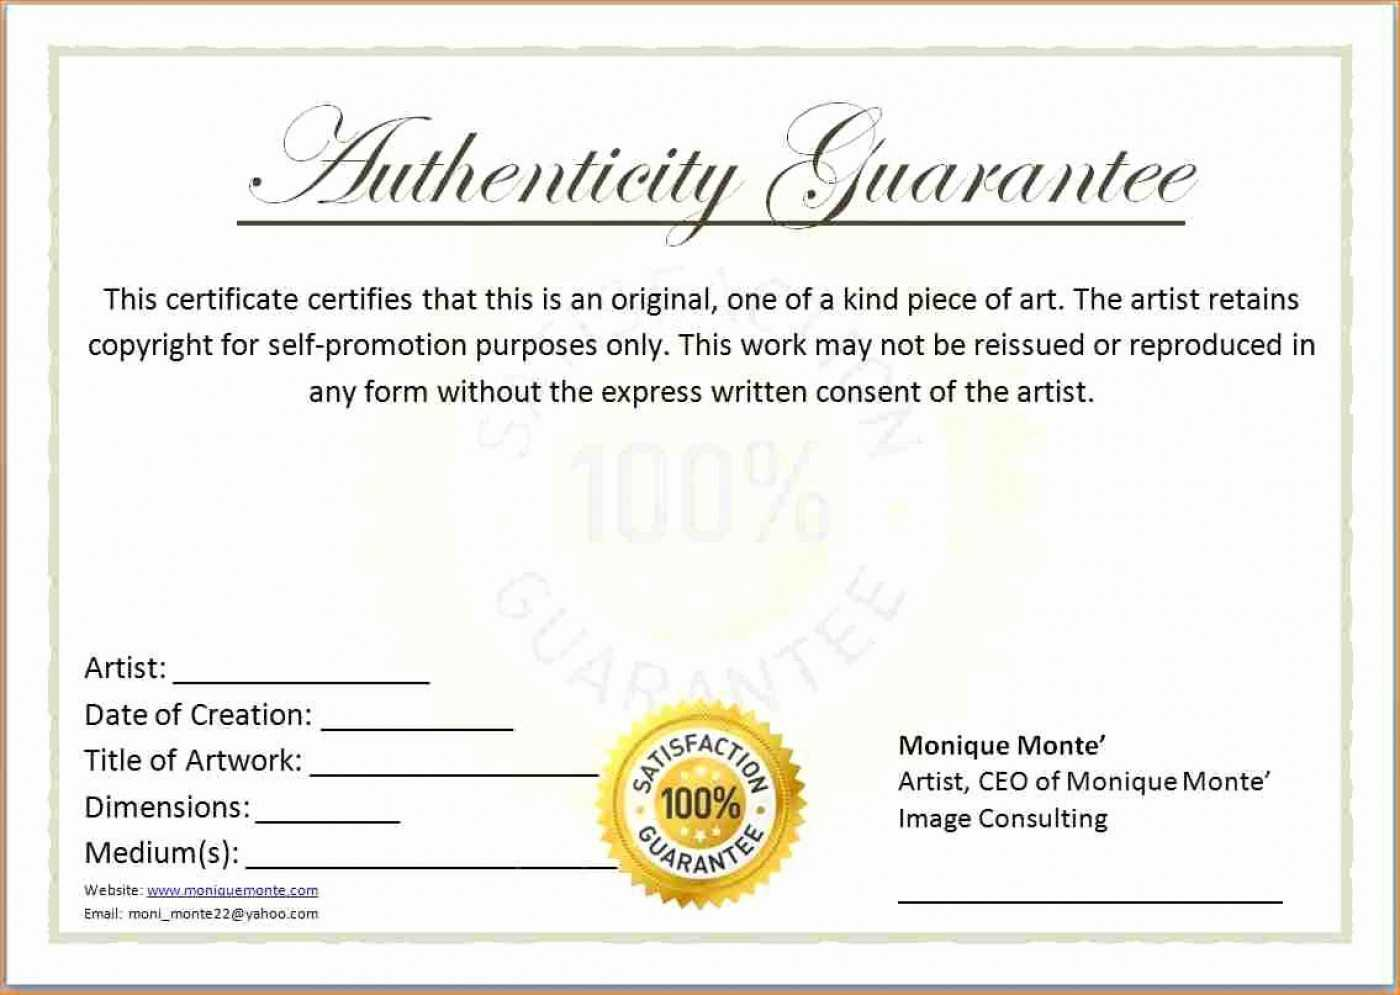 010 Artist Certificatefit8252C1275Ssl1 Certificate Of Throughout Certificate Of Authenticity Template